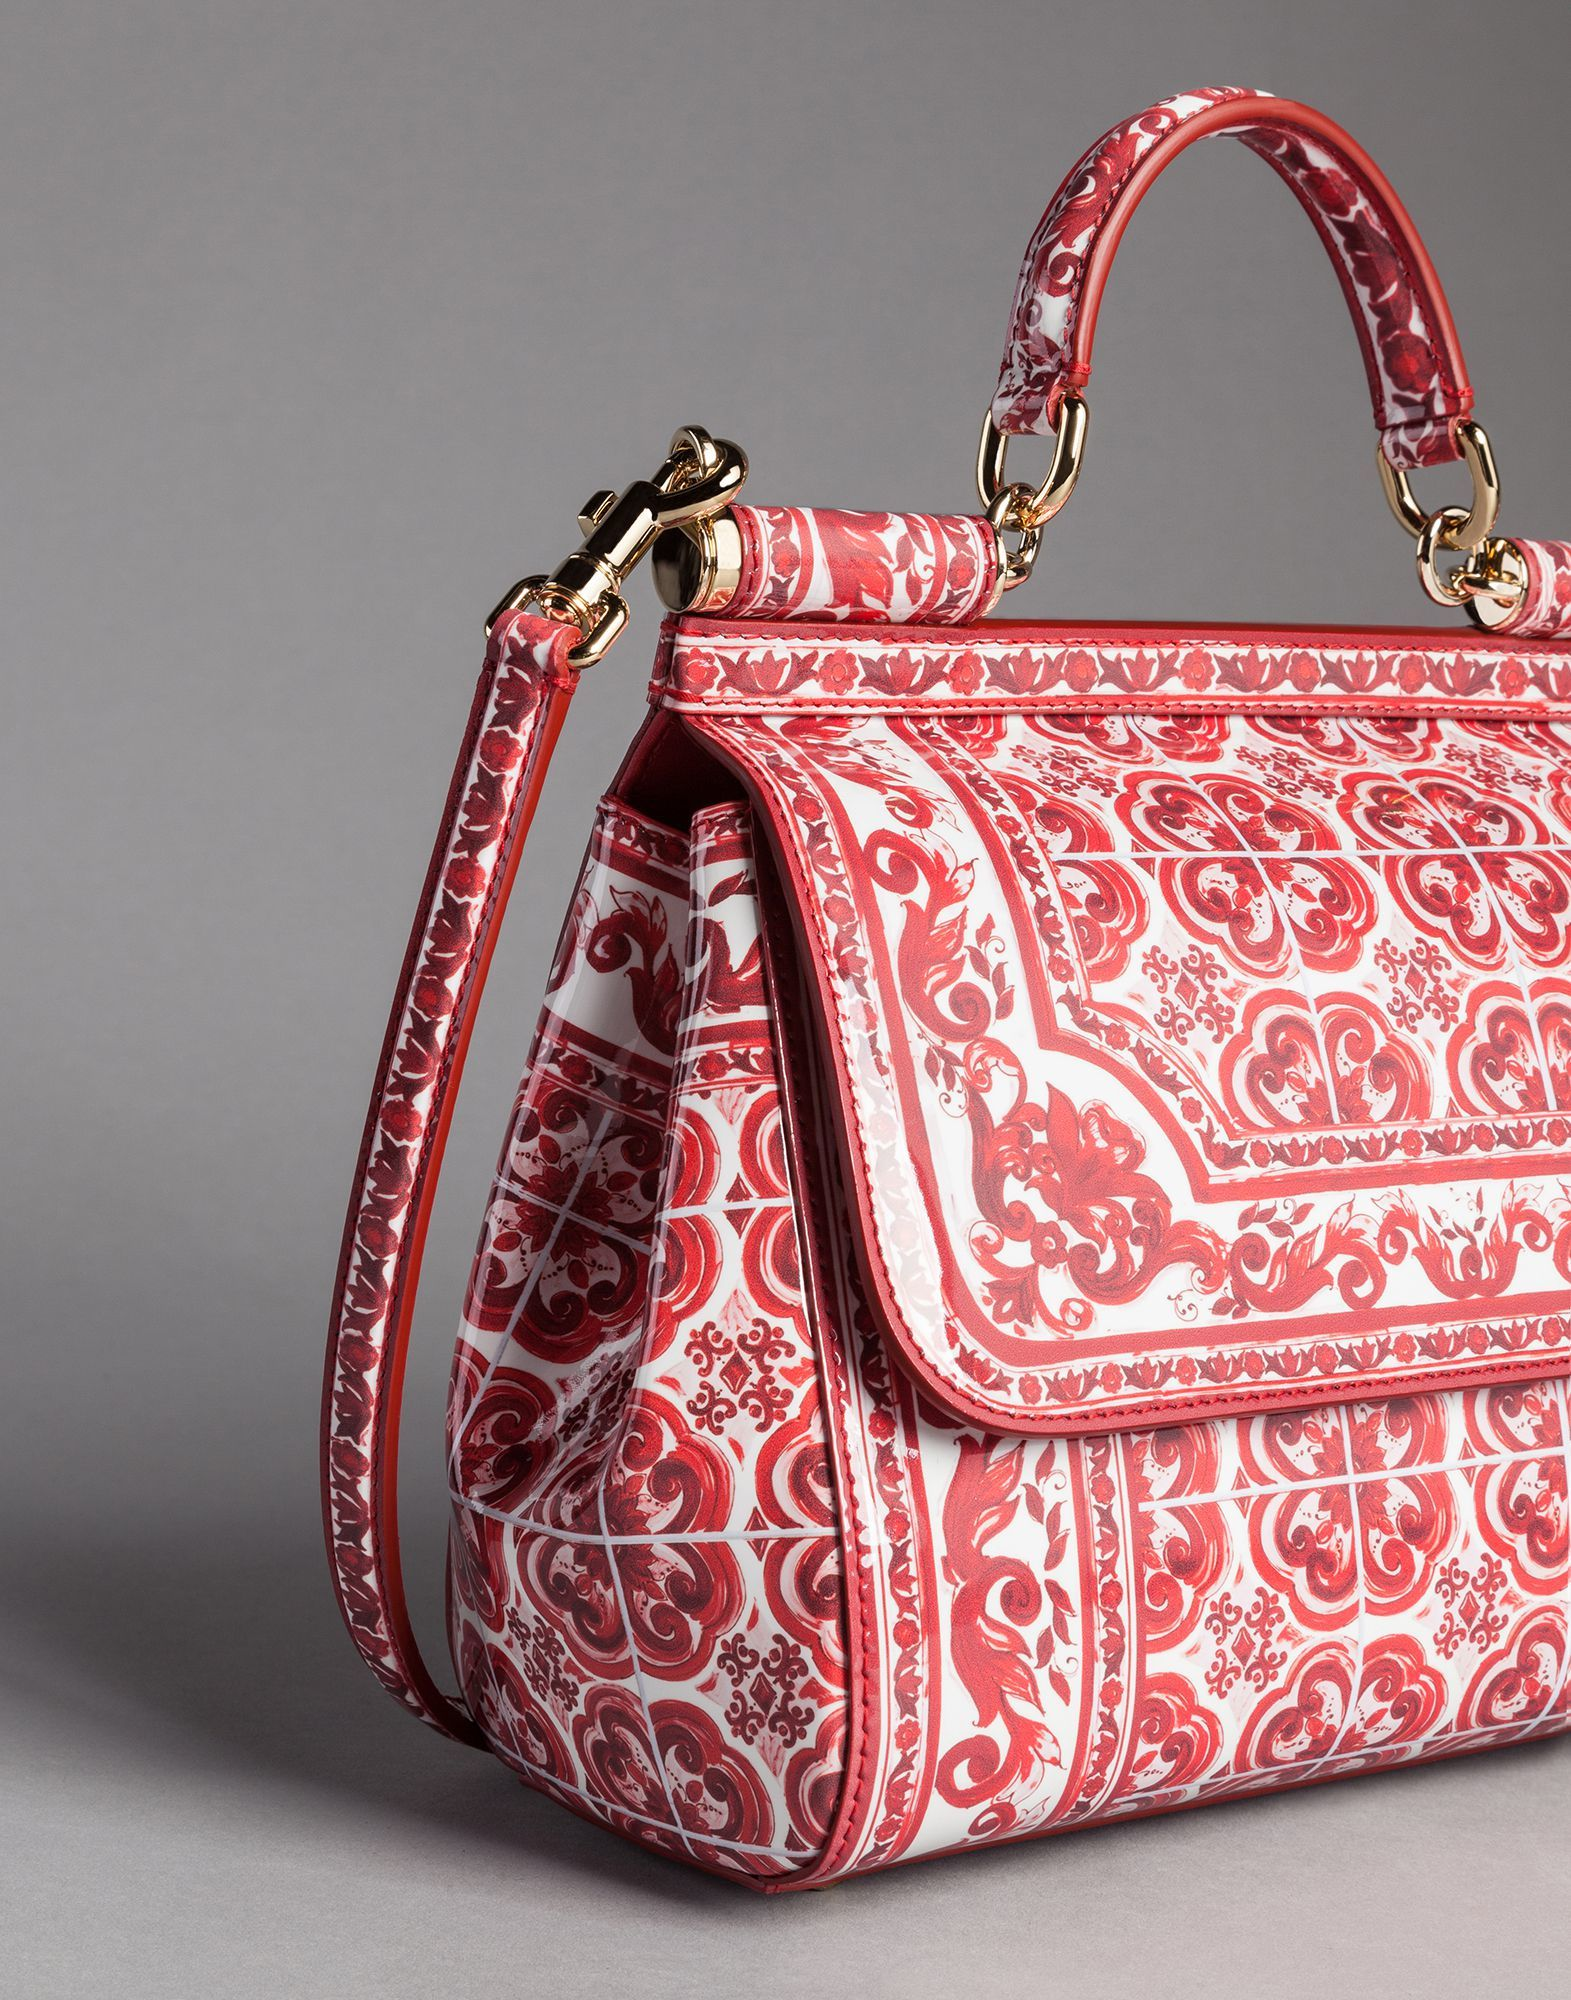 a00579e7c592 Dolce   Gabbana Red Majolica Print Medium Patent Leather Sicily Bag -  2